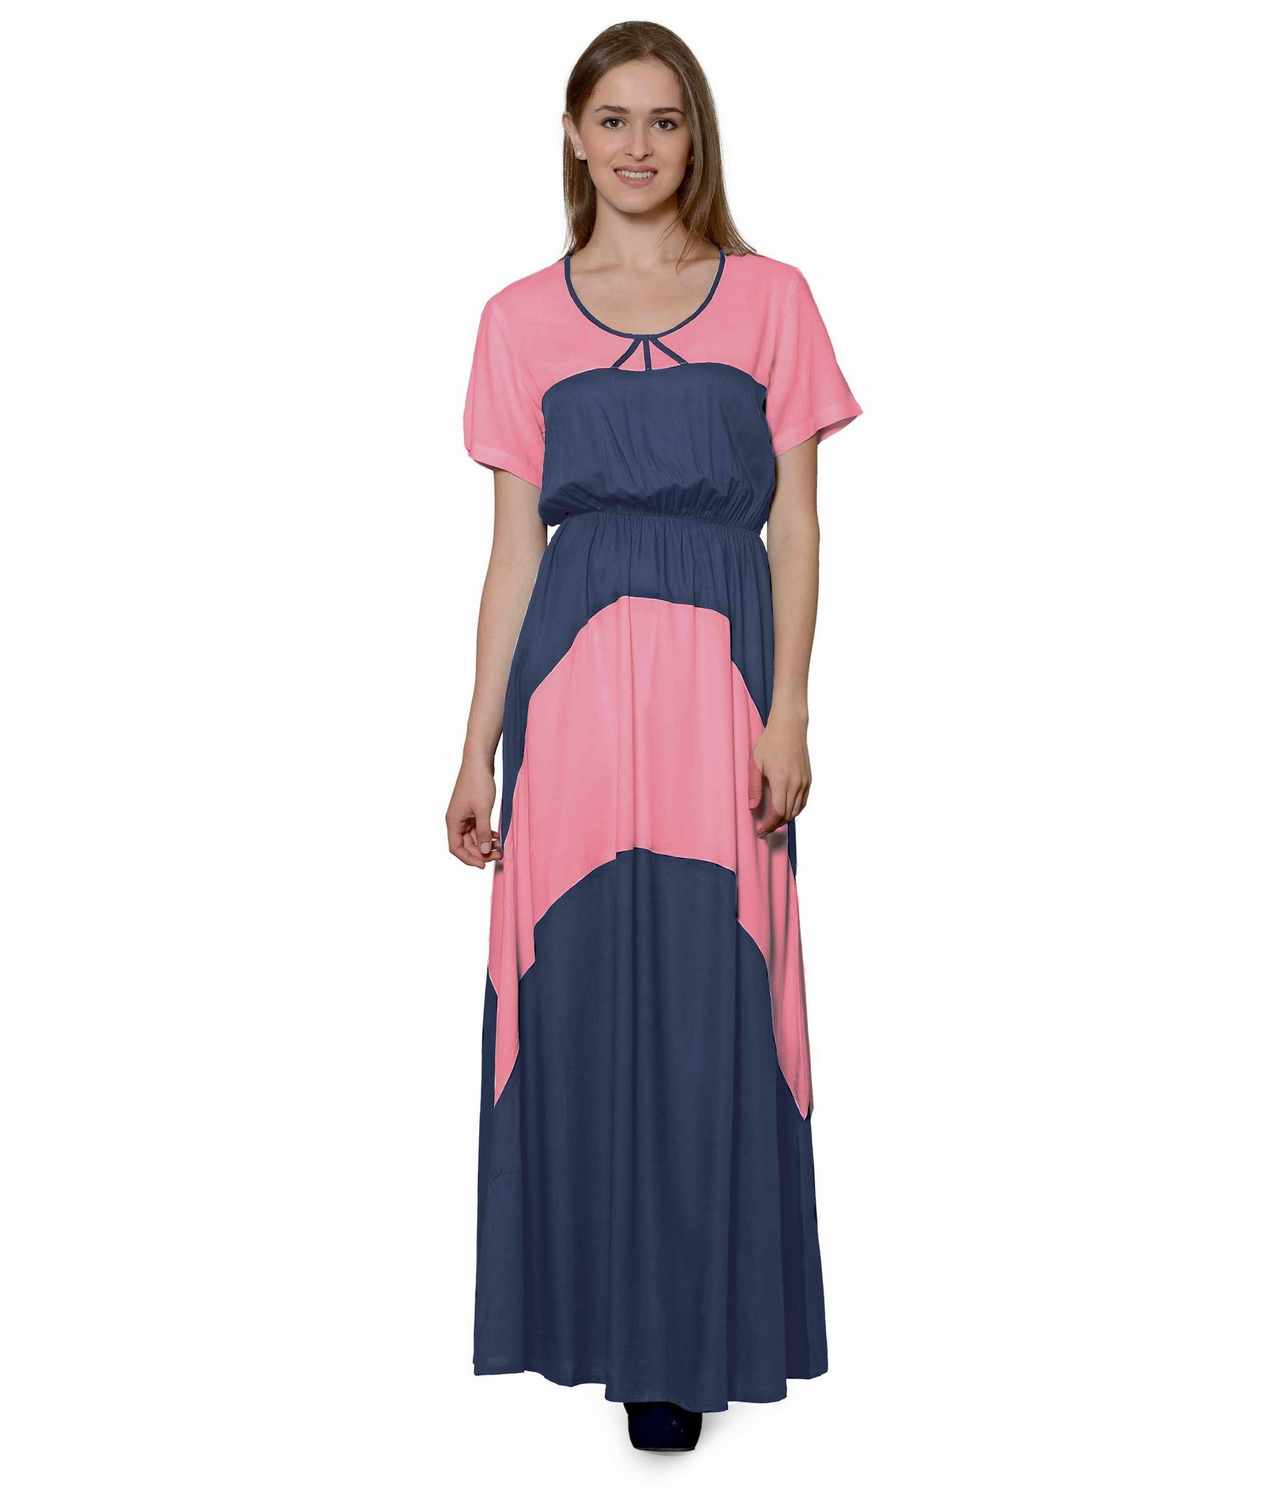 Color Block Slim Fit Maxi Dress Gown in Hot Pink:Grey